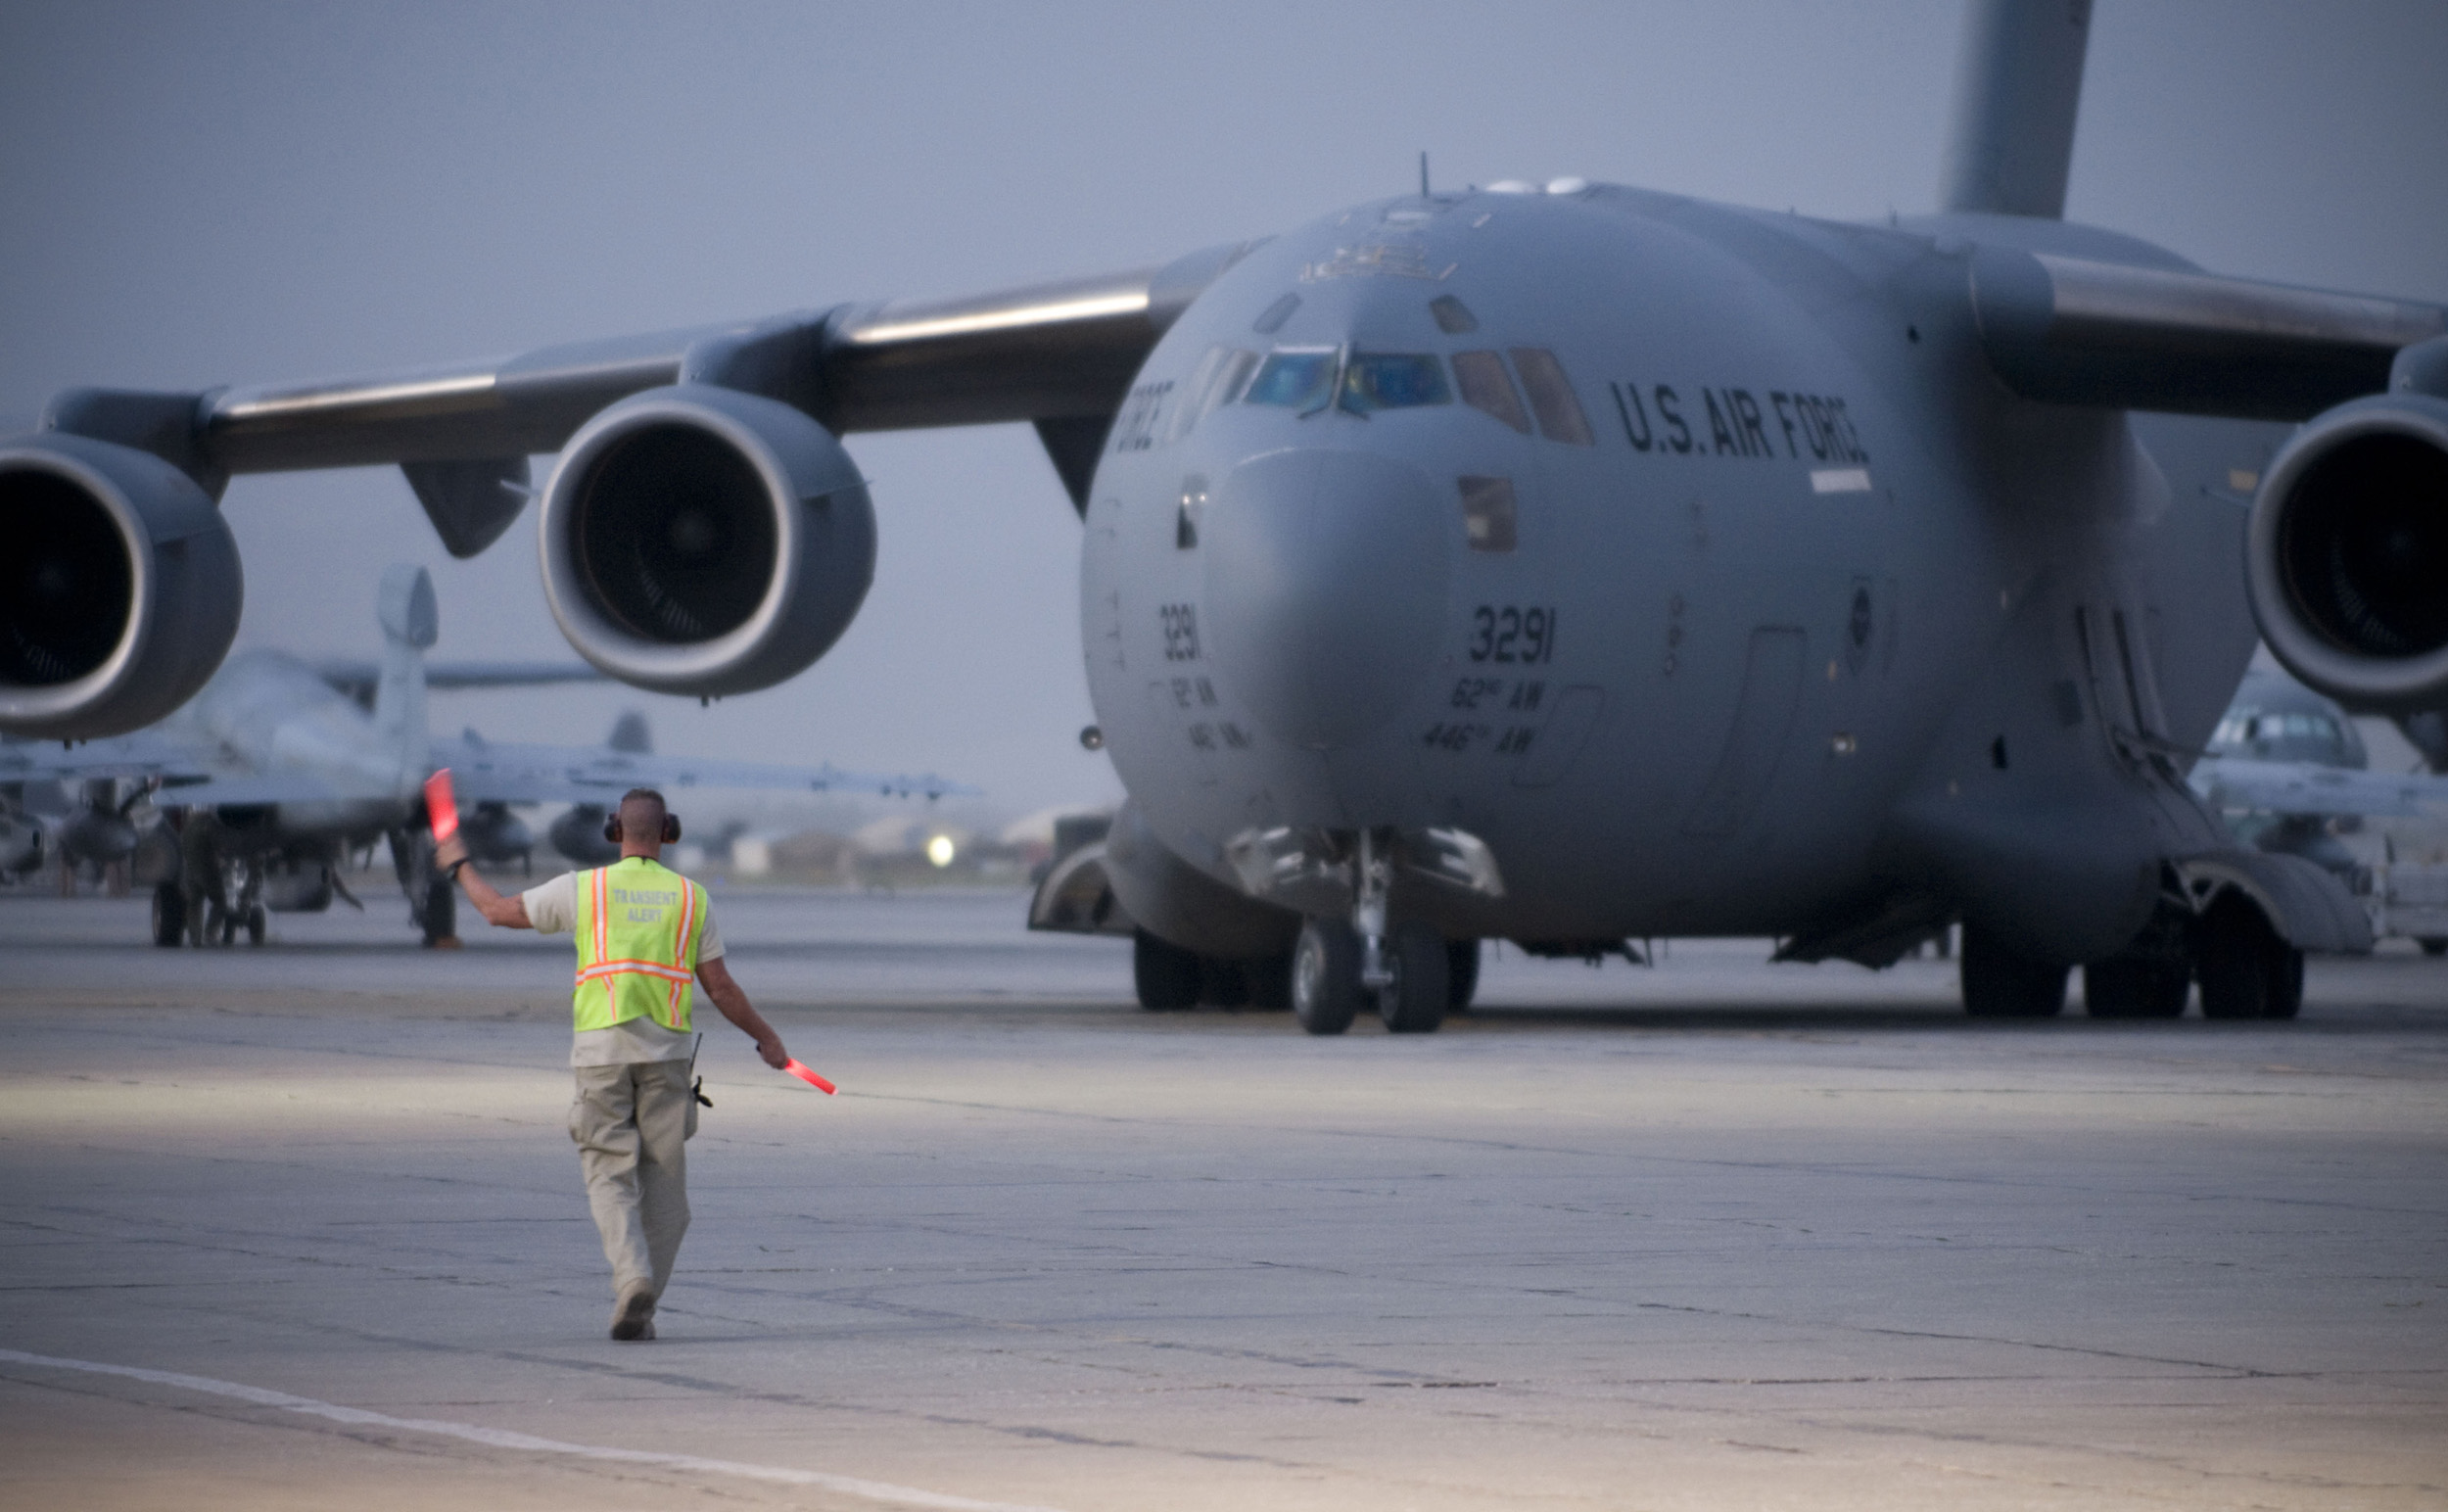 http://upload.wikimedia.org/wikipedia/commons/7/74/C-17_Globemaster_III_is_marshaled_into_position.jpg